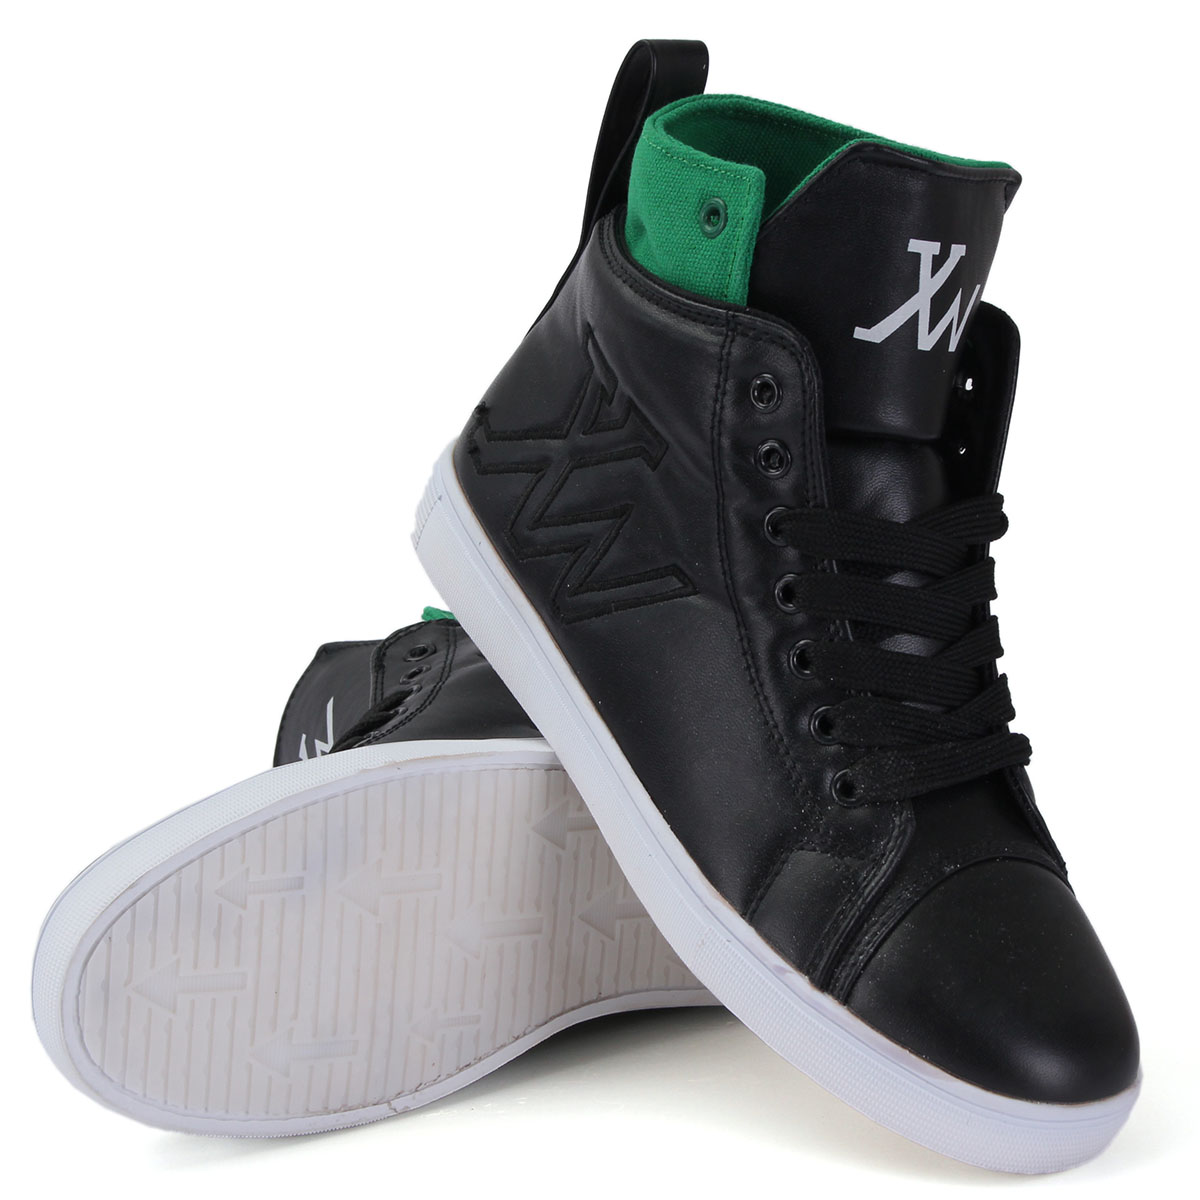 Shop a great selection of Men's High Top Sneakers at Nordstrom Rack. Find designer Men's High Top Sneakers up to 70% off and get free shipping on orders over $